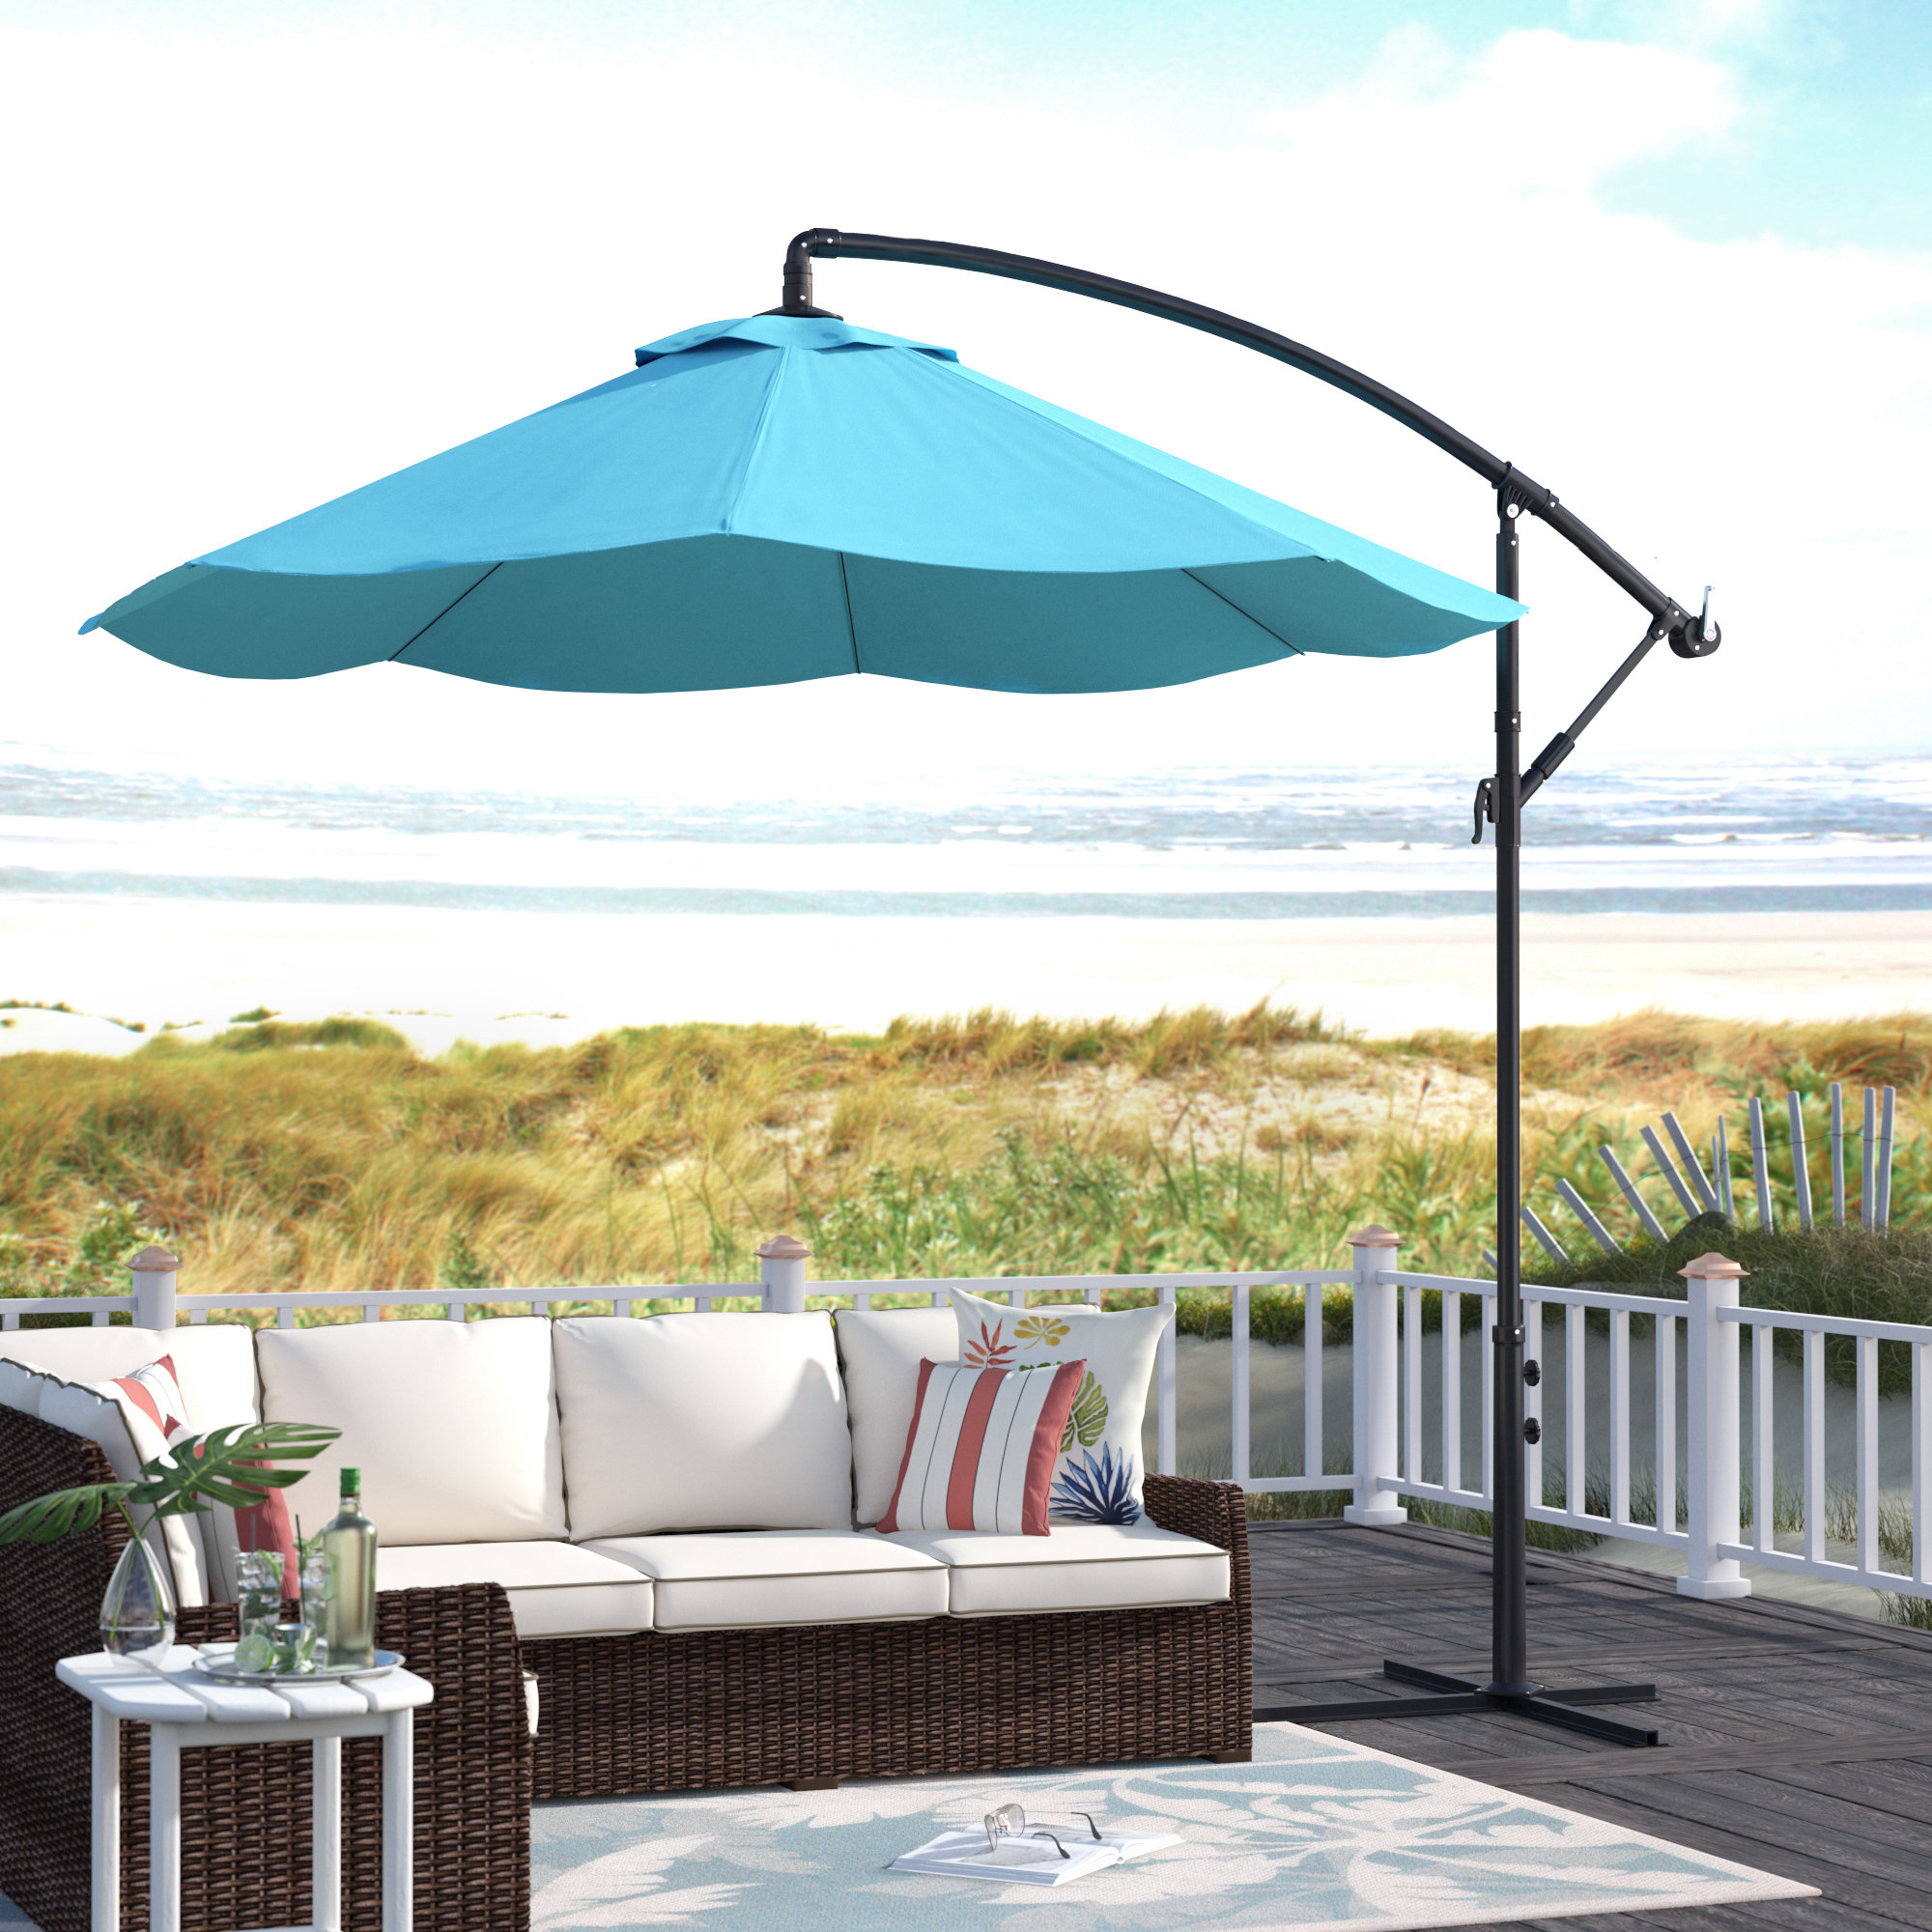 Dore Patio Cantilever Umbrellas Regarding Most Current Vassalboro 10' Cantilever Umbrella (View 12 of 20)